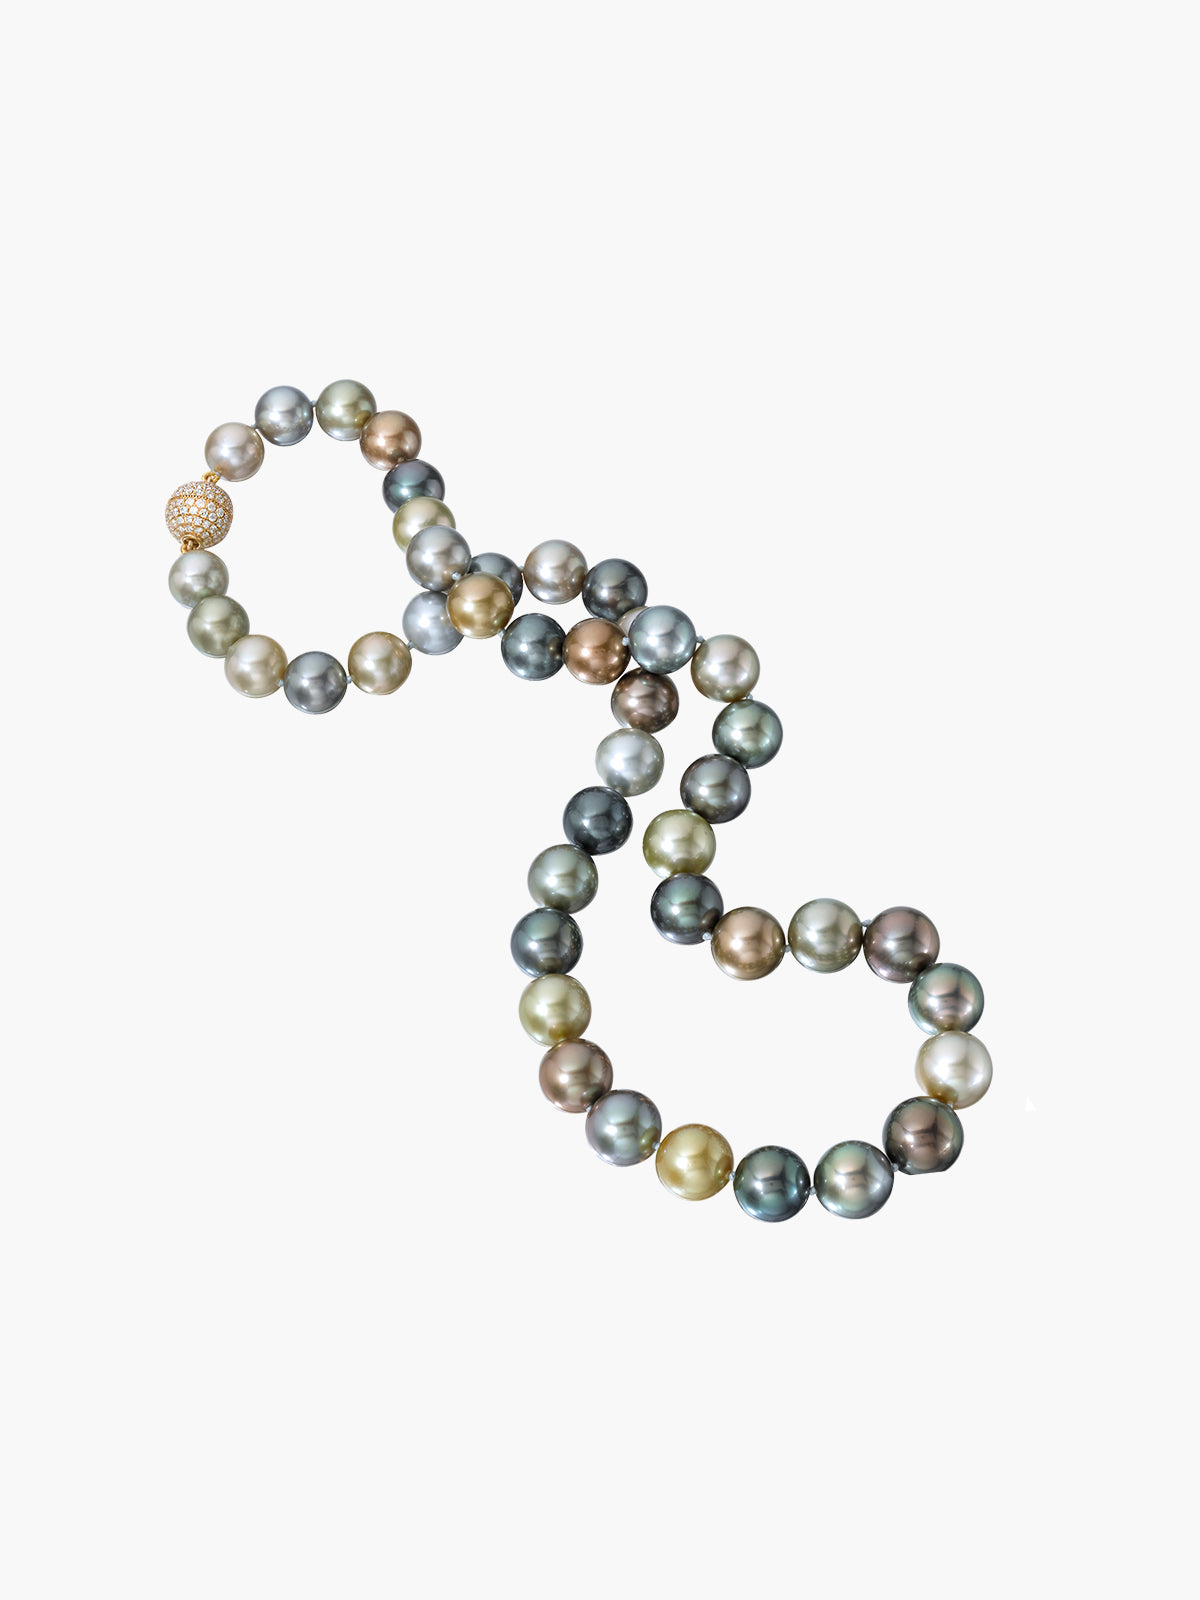 Round Fijian Pearl Necklace Round Fijian Pearl Necklace